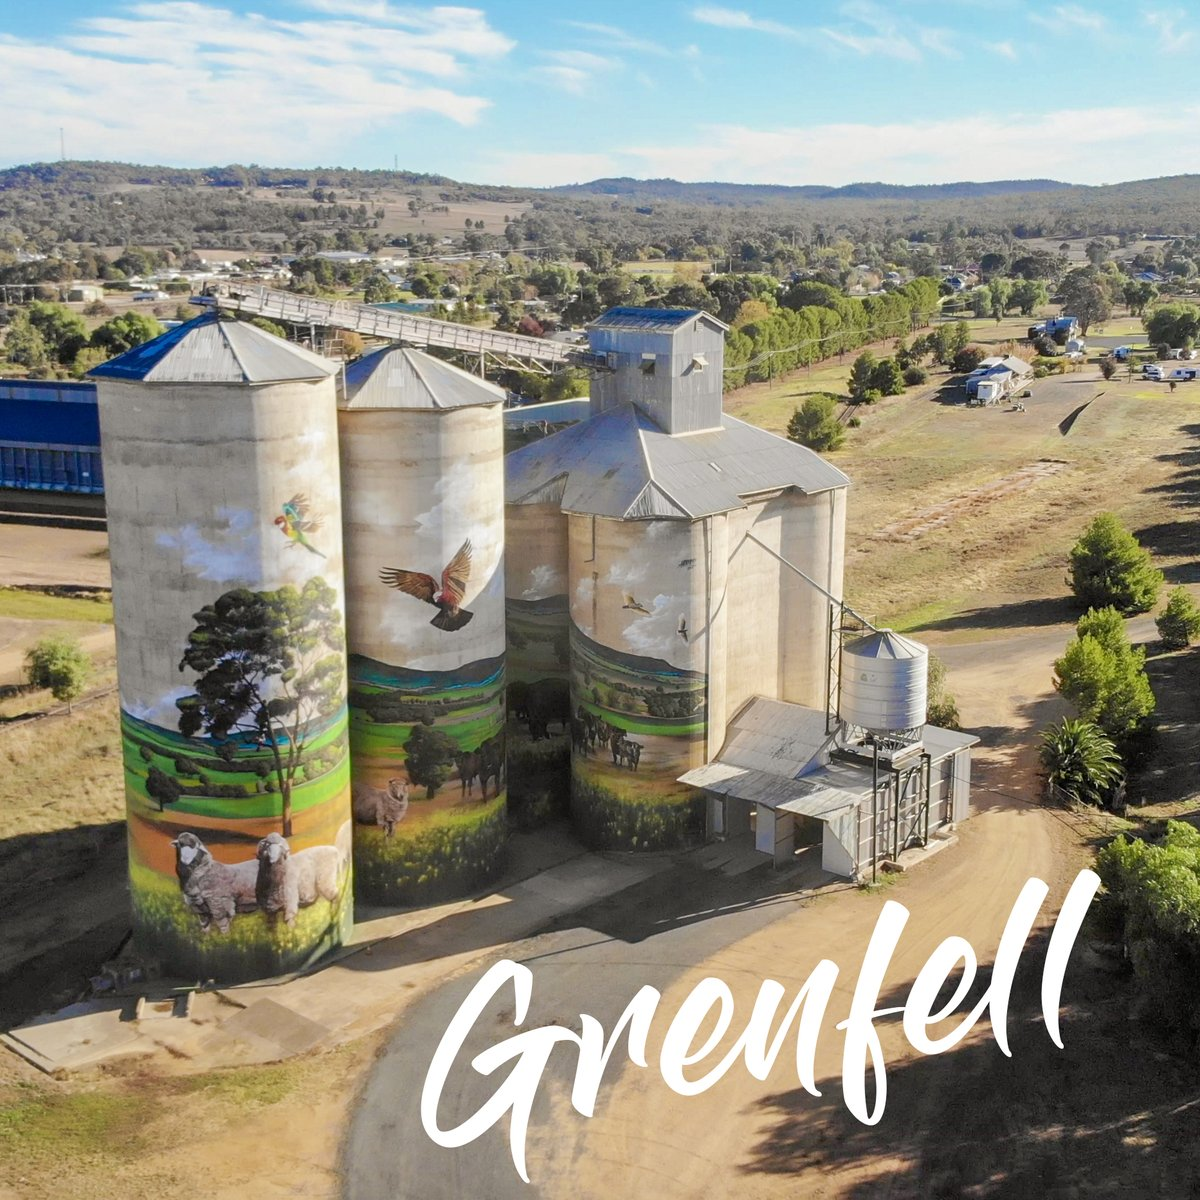 #Flashbackfriday Small town, big art - what gems have you discovered in regional NSW? @Heesco #teachnsw #goingplaces  #australiansiloarttrail https://t.co/UHRddTaGqv